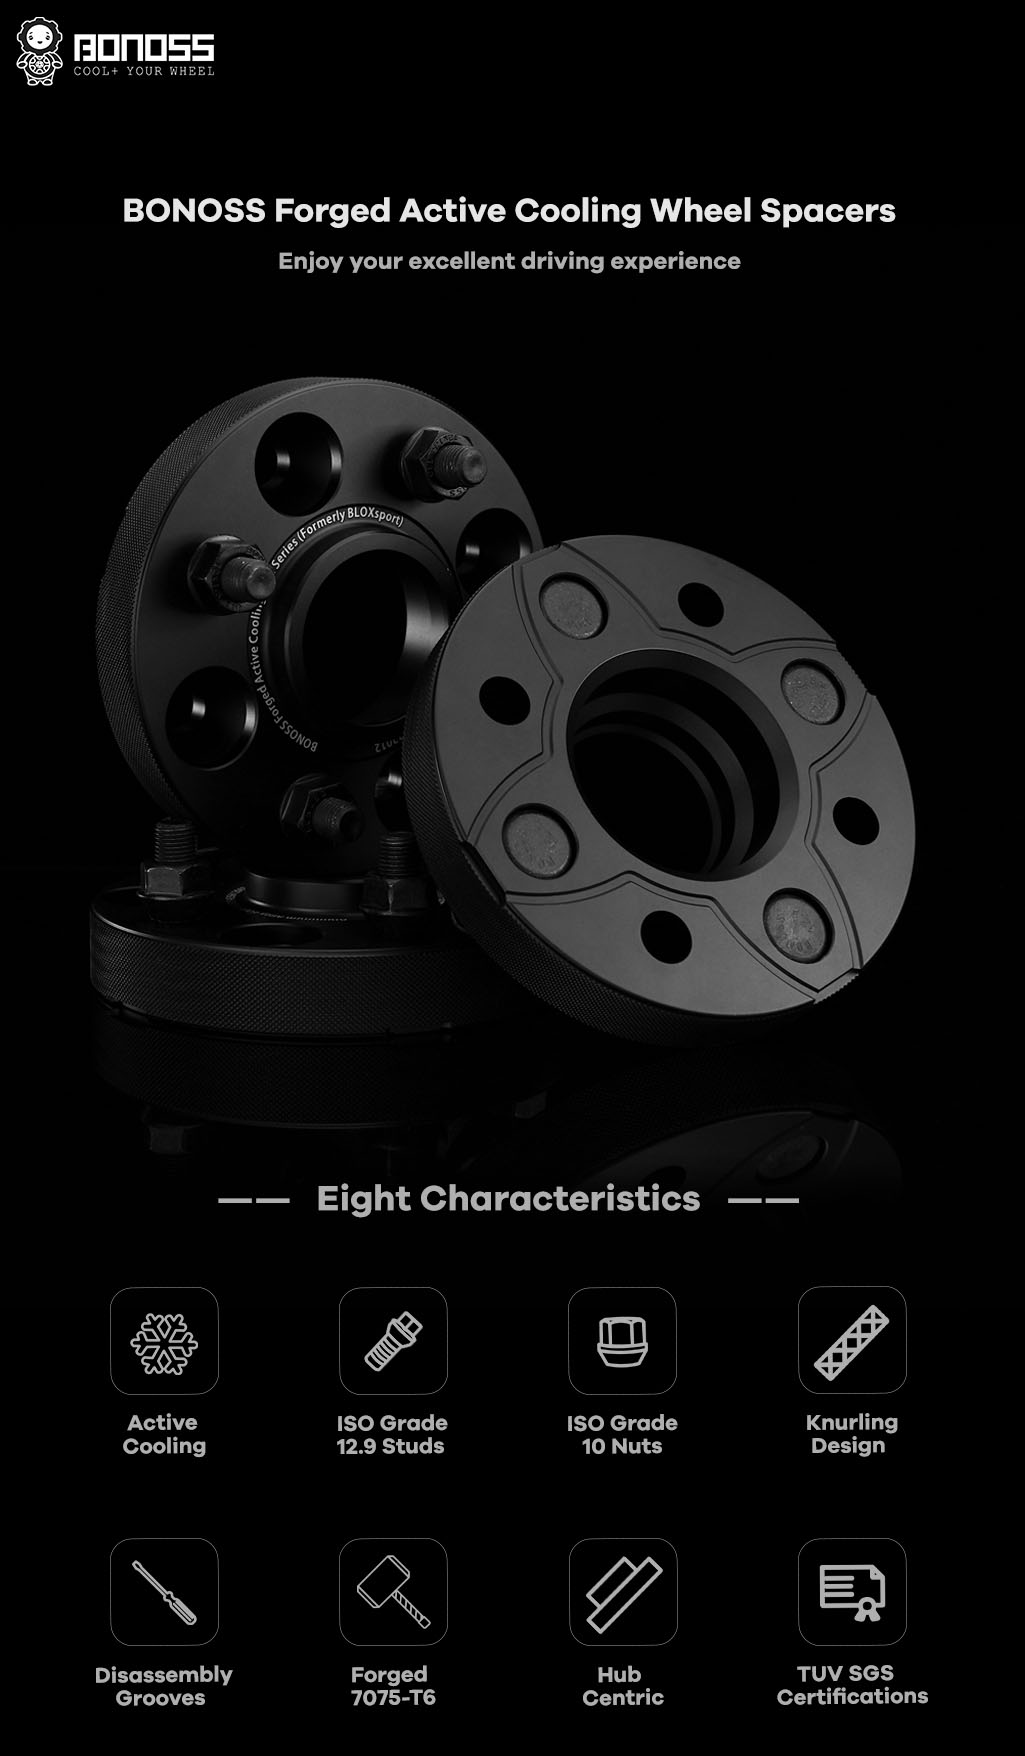 AL7075-T6 BONOSS-forged-active-cooling-hubcentric 4x110 wheel-spacer-by-lulu-1